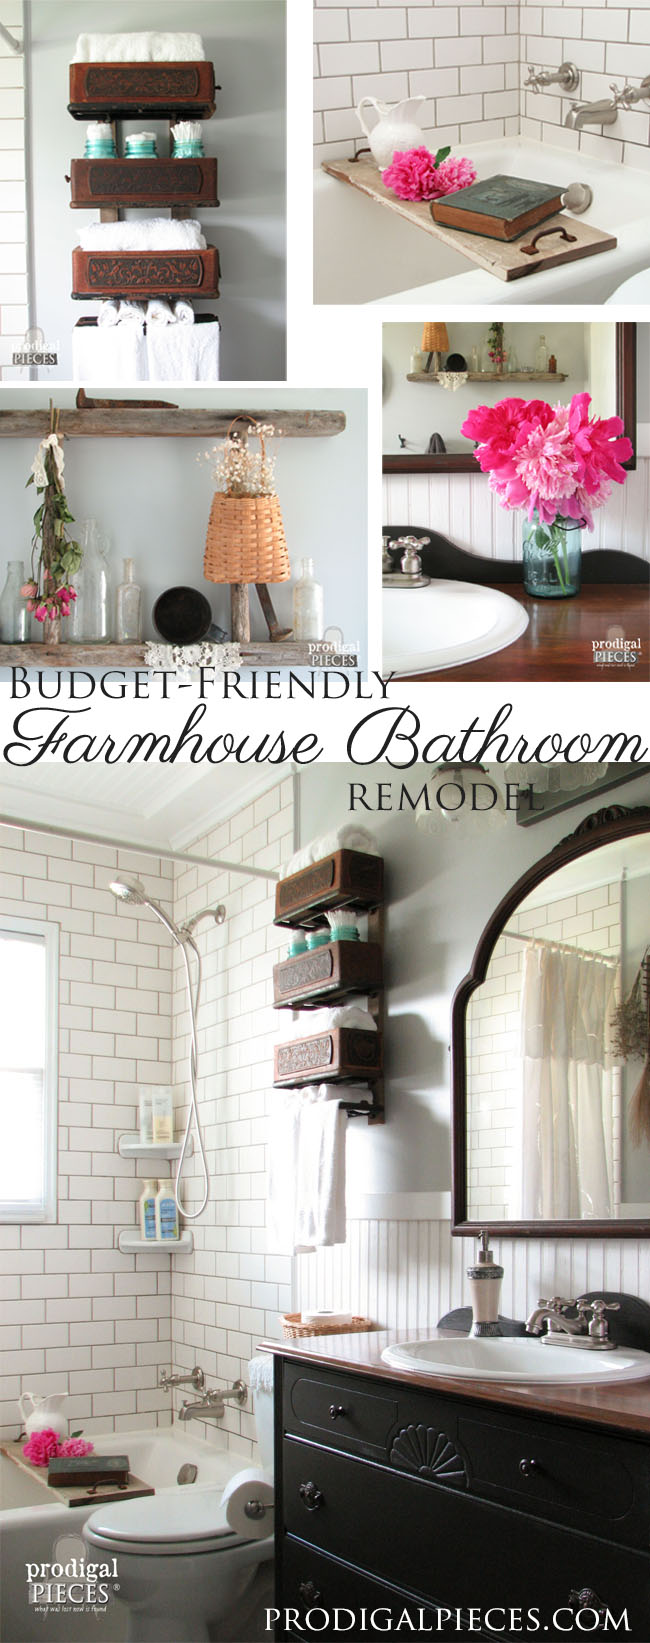 Budget-Friendly DIY Farmhouse Style Bathroom Makeover | Prodigal Pieces | www.prodigalpieces.com